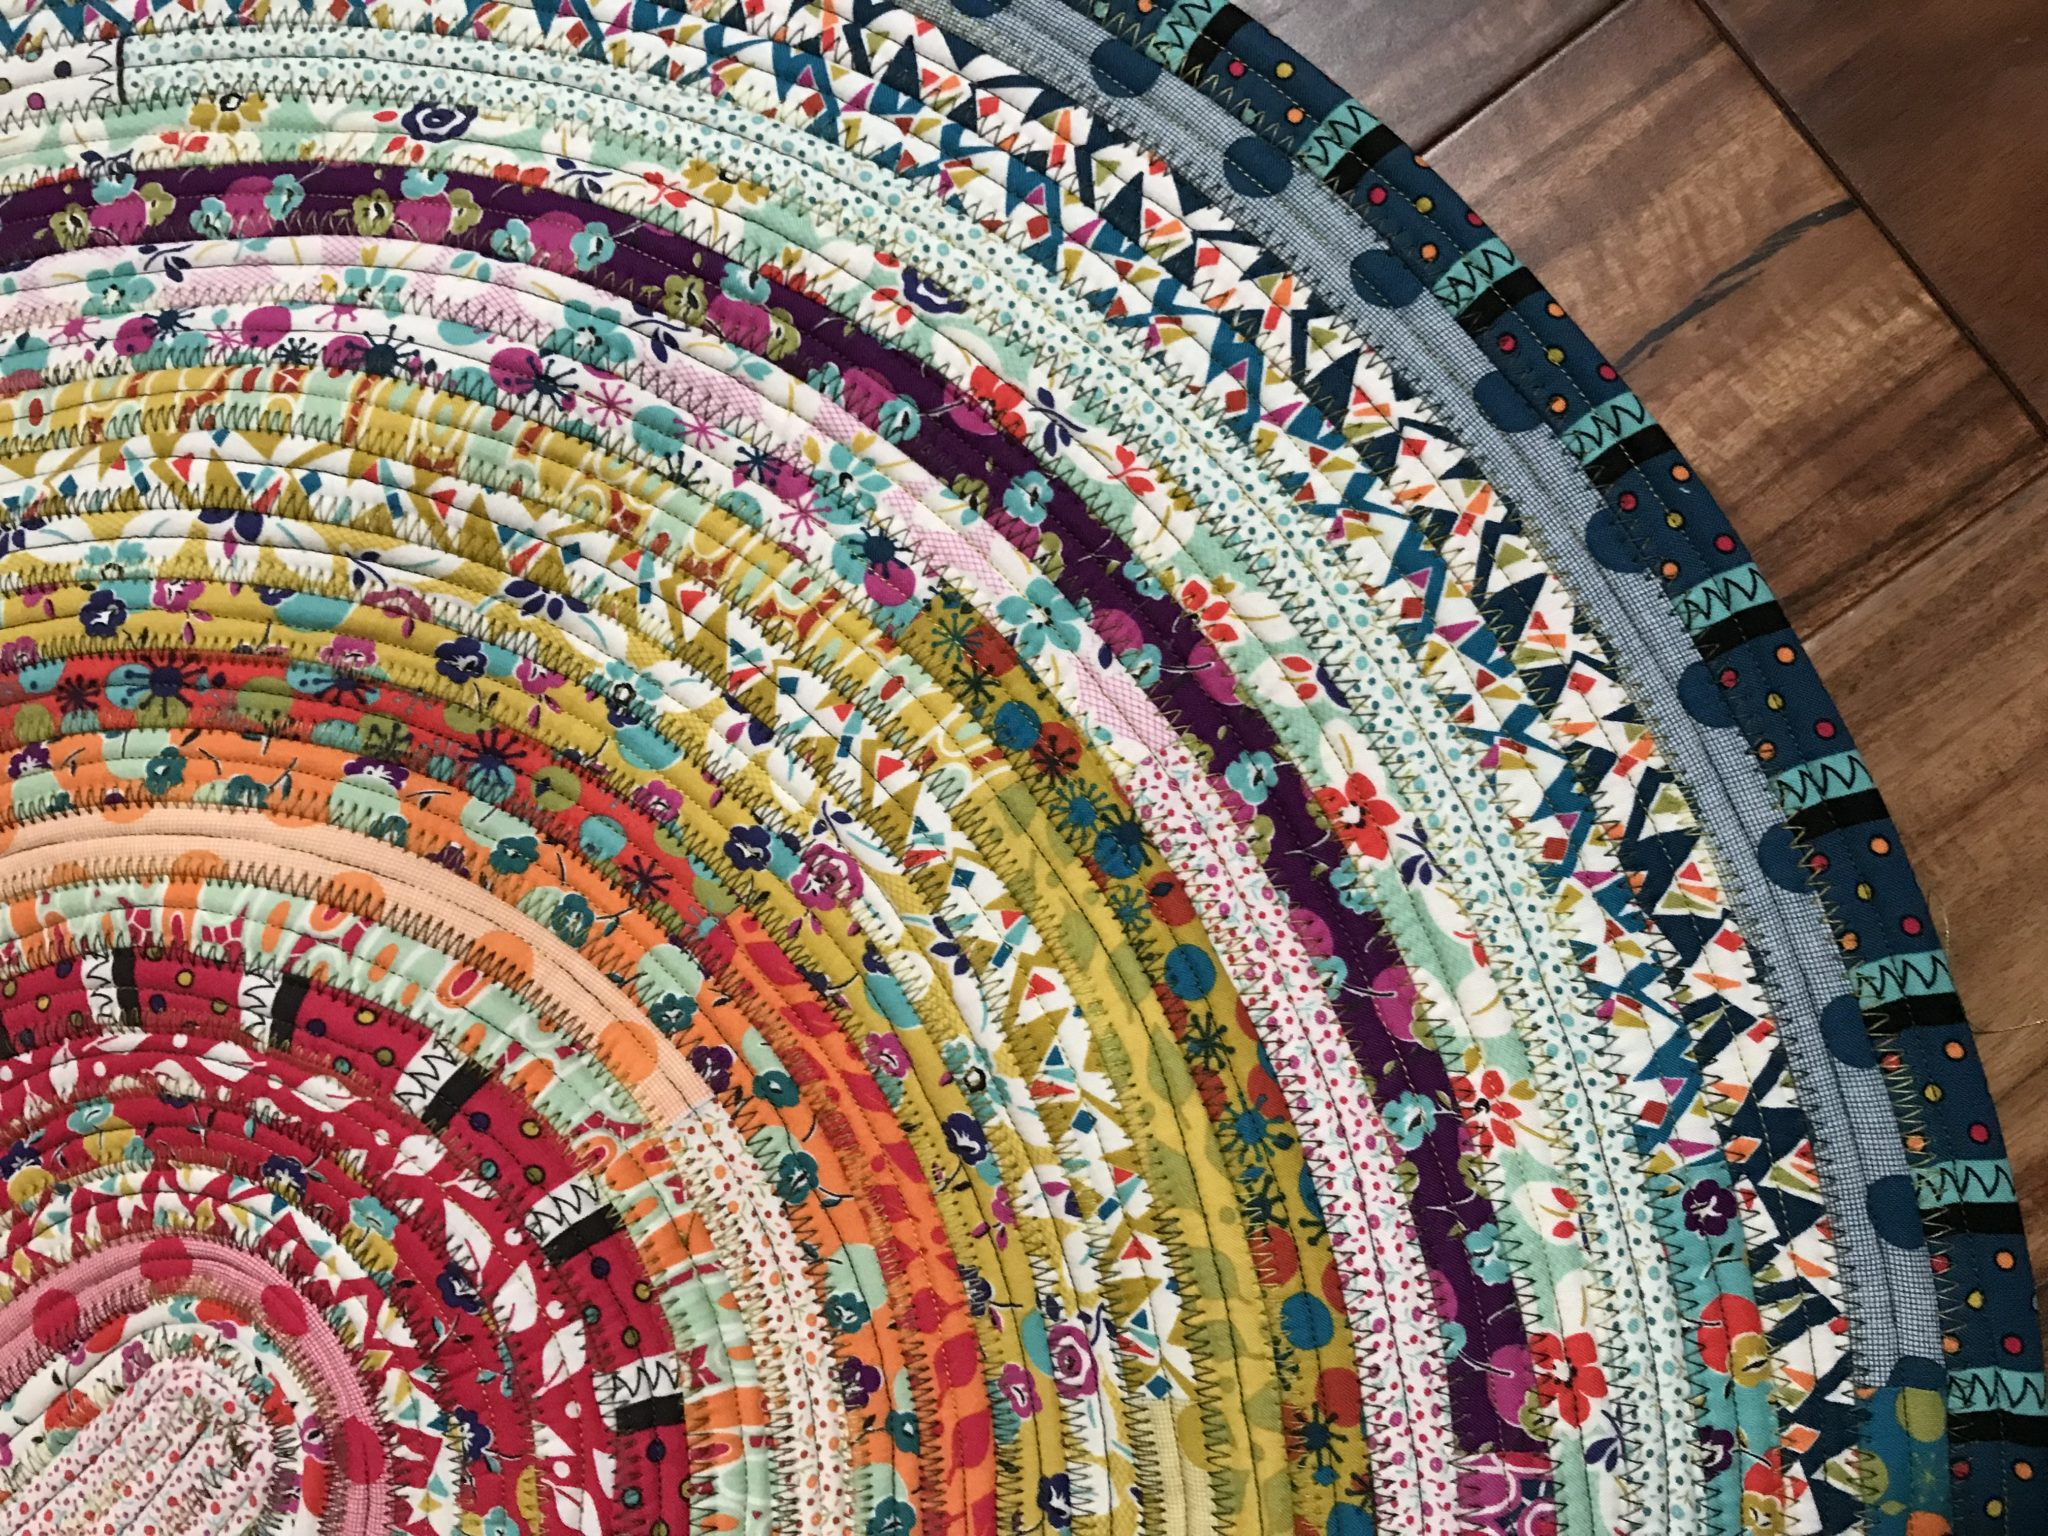 a colorful rug made of stripes